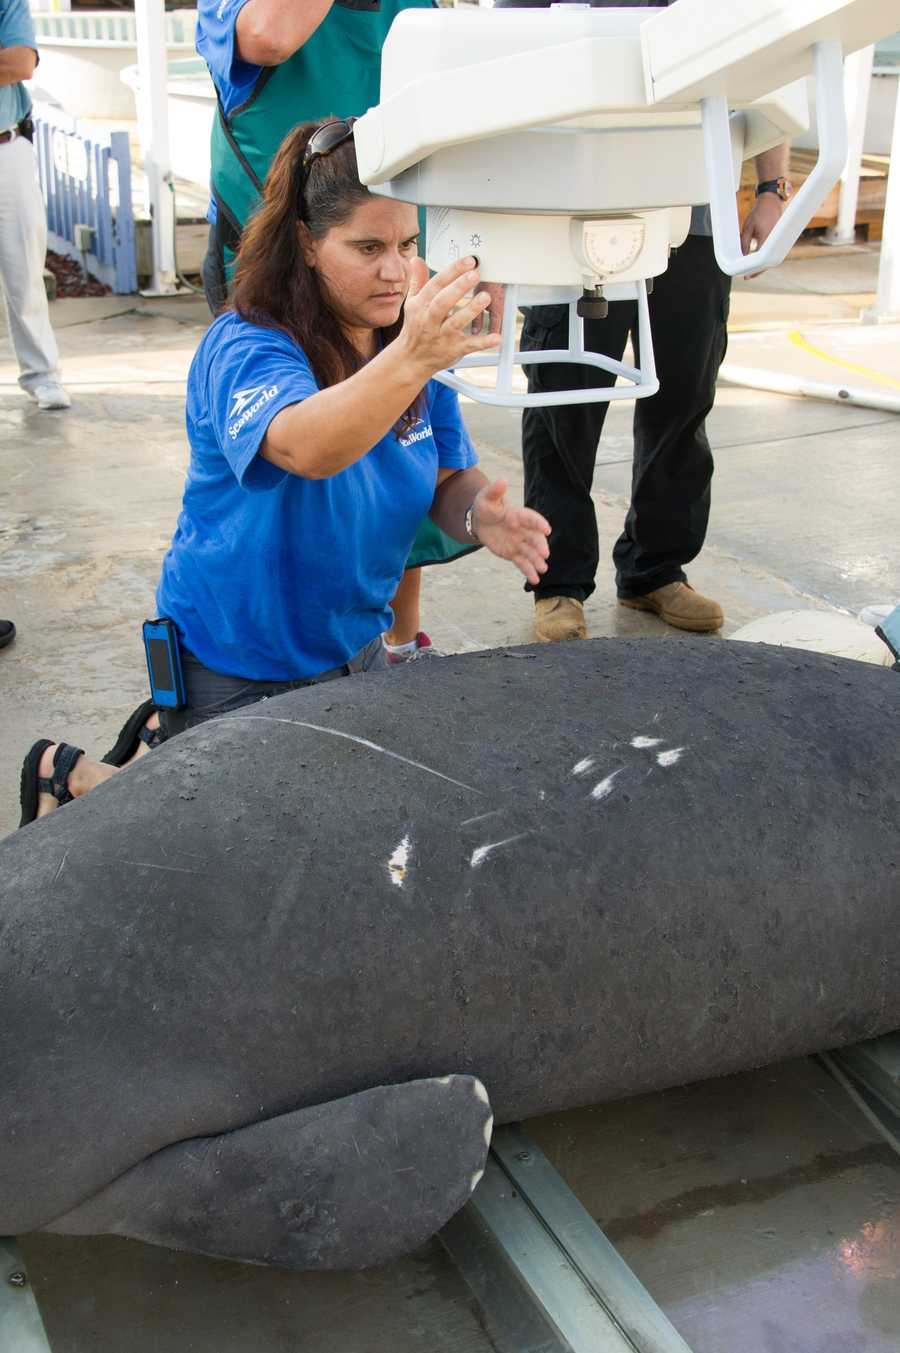 The SeaWorld Animal Rescue Team continues to care for an injured manatee transported to SeaWorld this past Saturday, August 31. Today, animal care experts took radiographs of the adult male manatee's chest cavity to see if there were internal injuries to the spine and chest after he received watercraft injuries. The manatee is in guarded condition and will be monitored closely during the next few days.